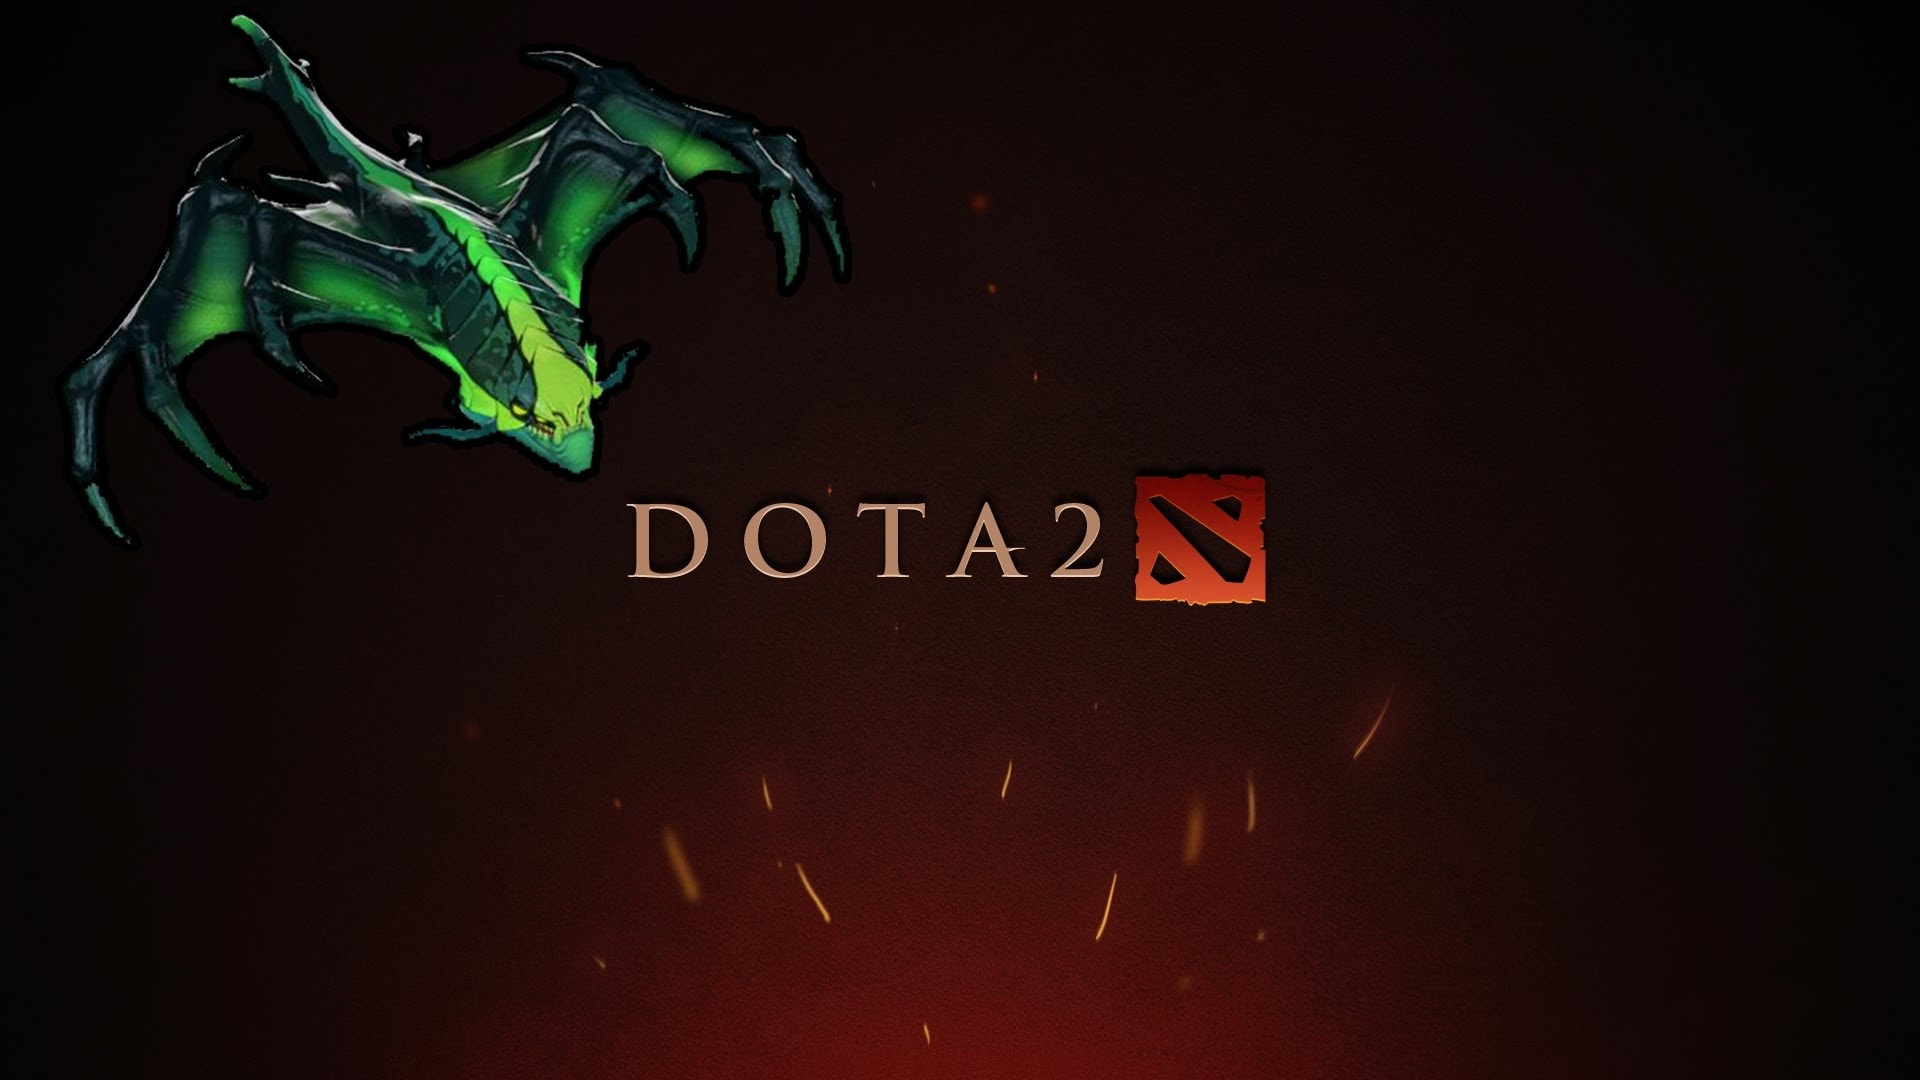 Dota2 : Viper full hd wallpapers